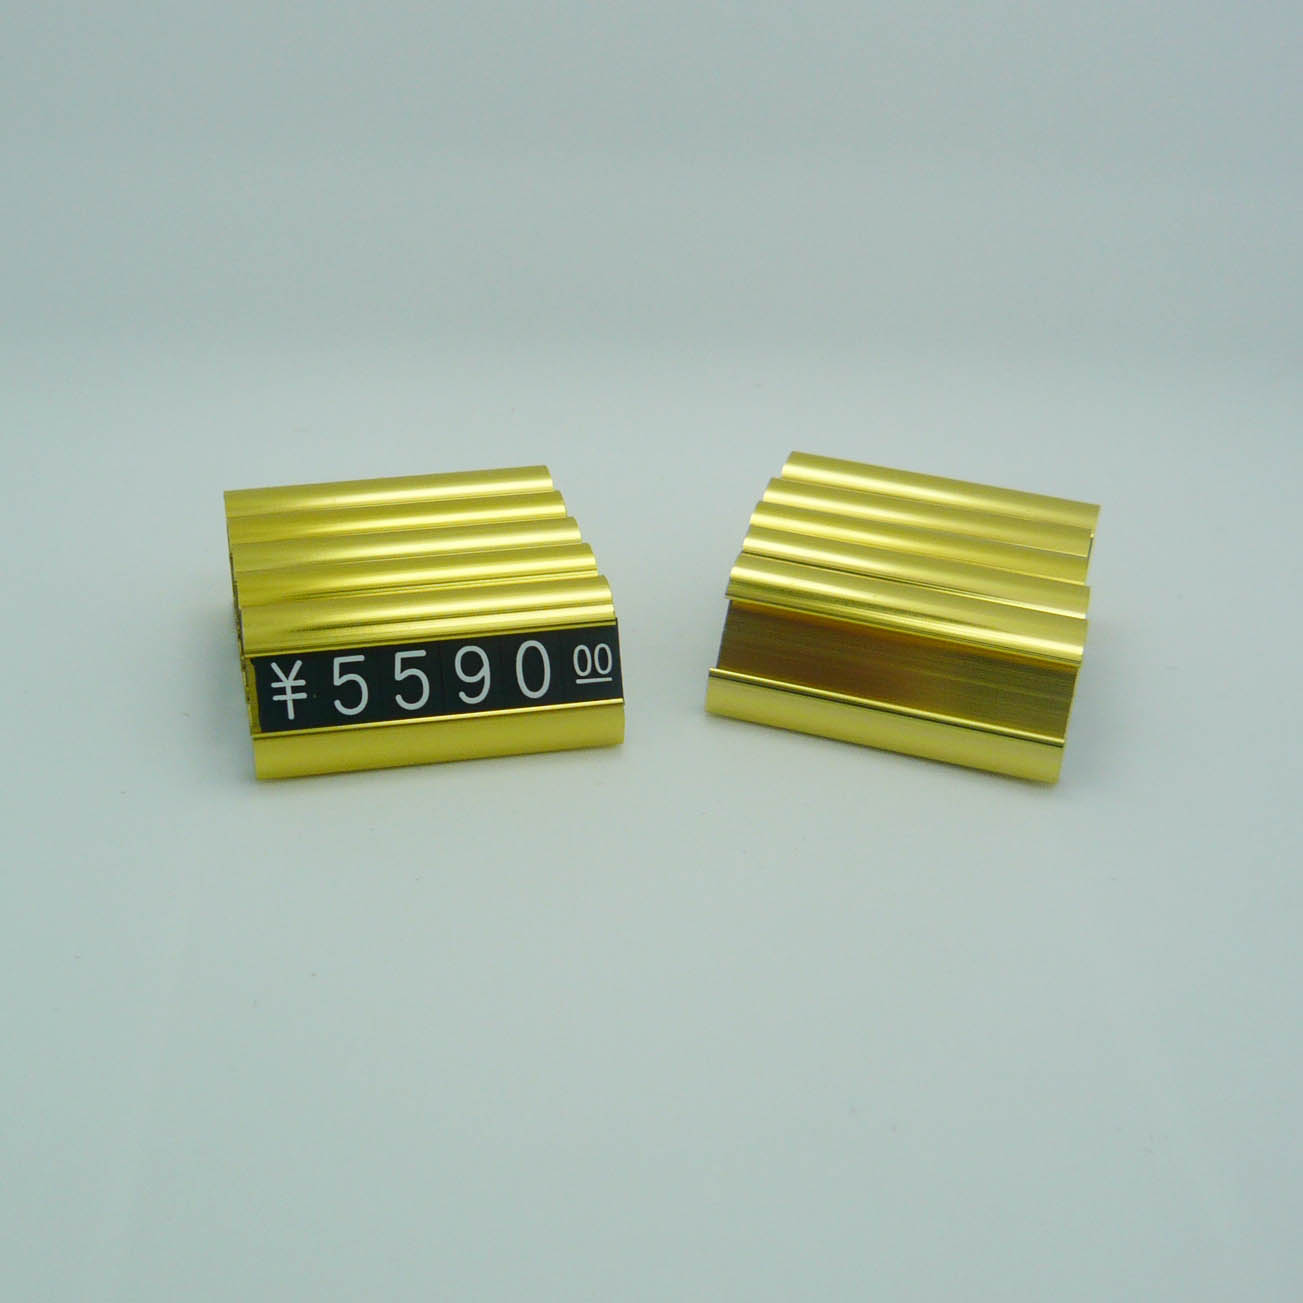 Tabletop Gold Aluminium Assembly Price Tags Jewelry